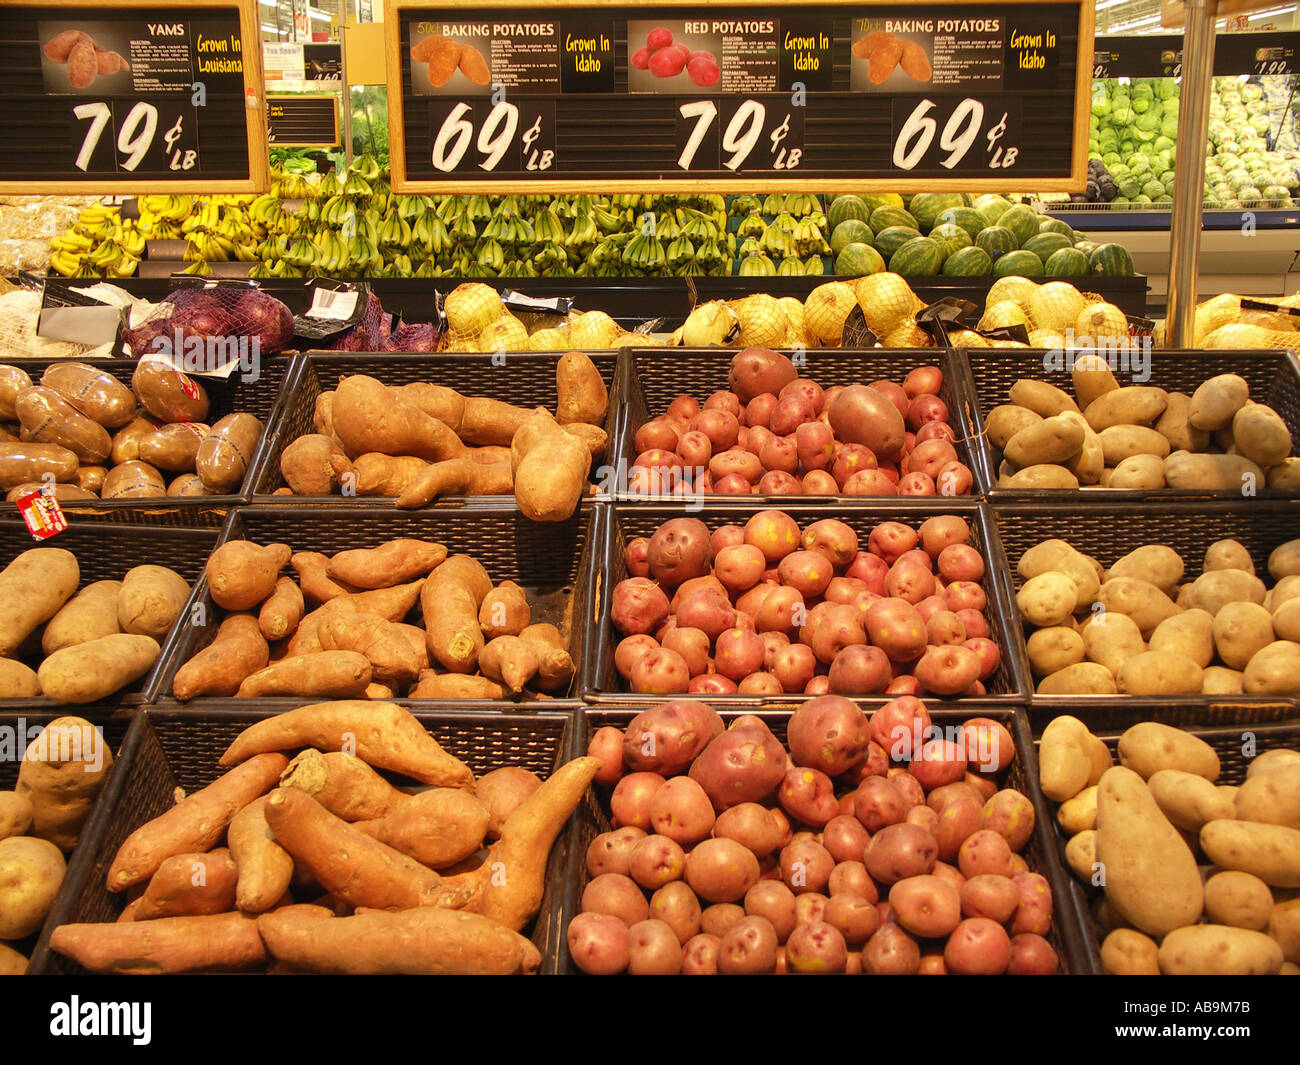 Potatoes and Yams in Grocery Store Stock Photo: 4186234 - Alamy